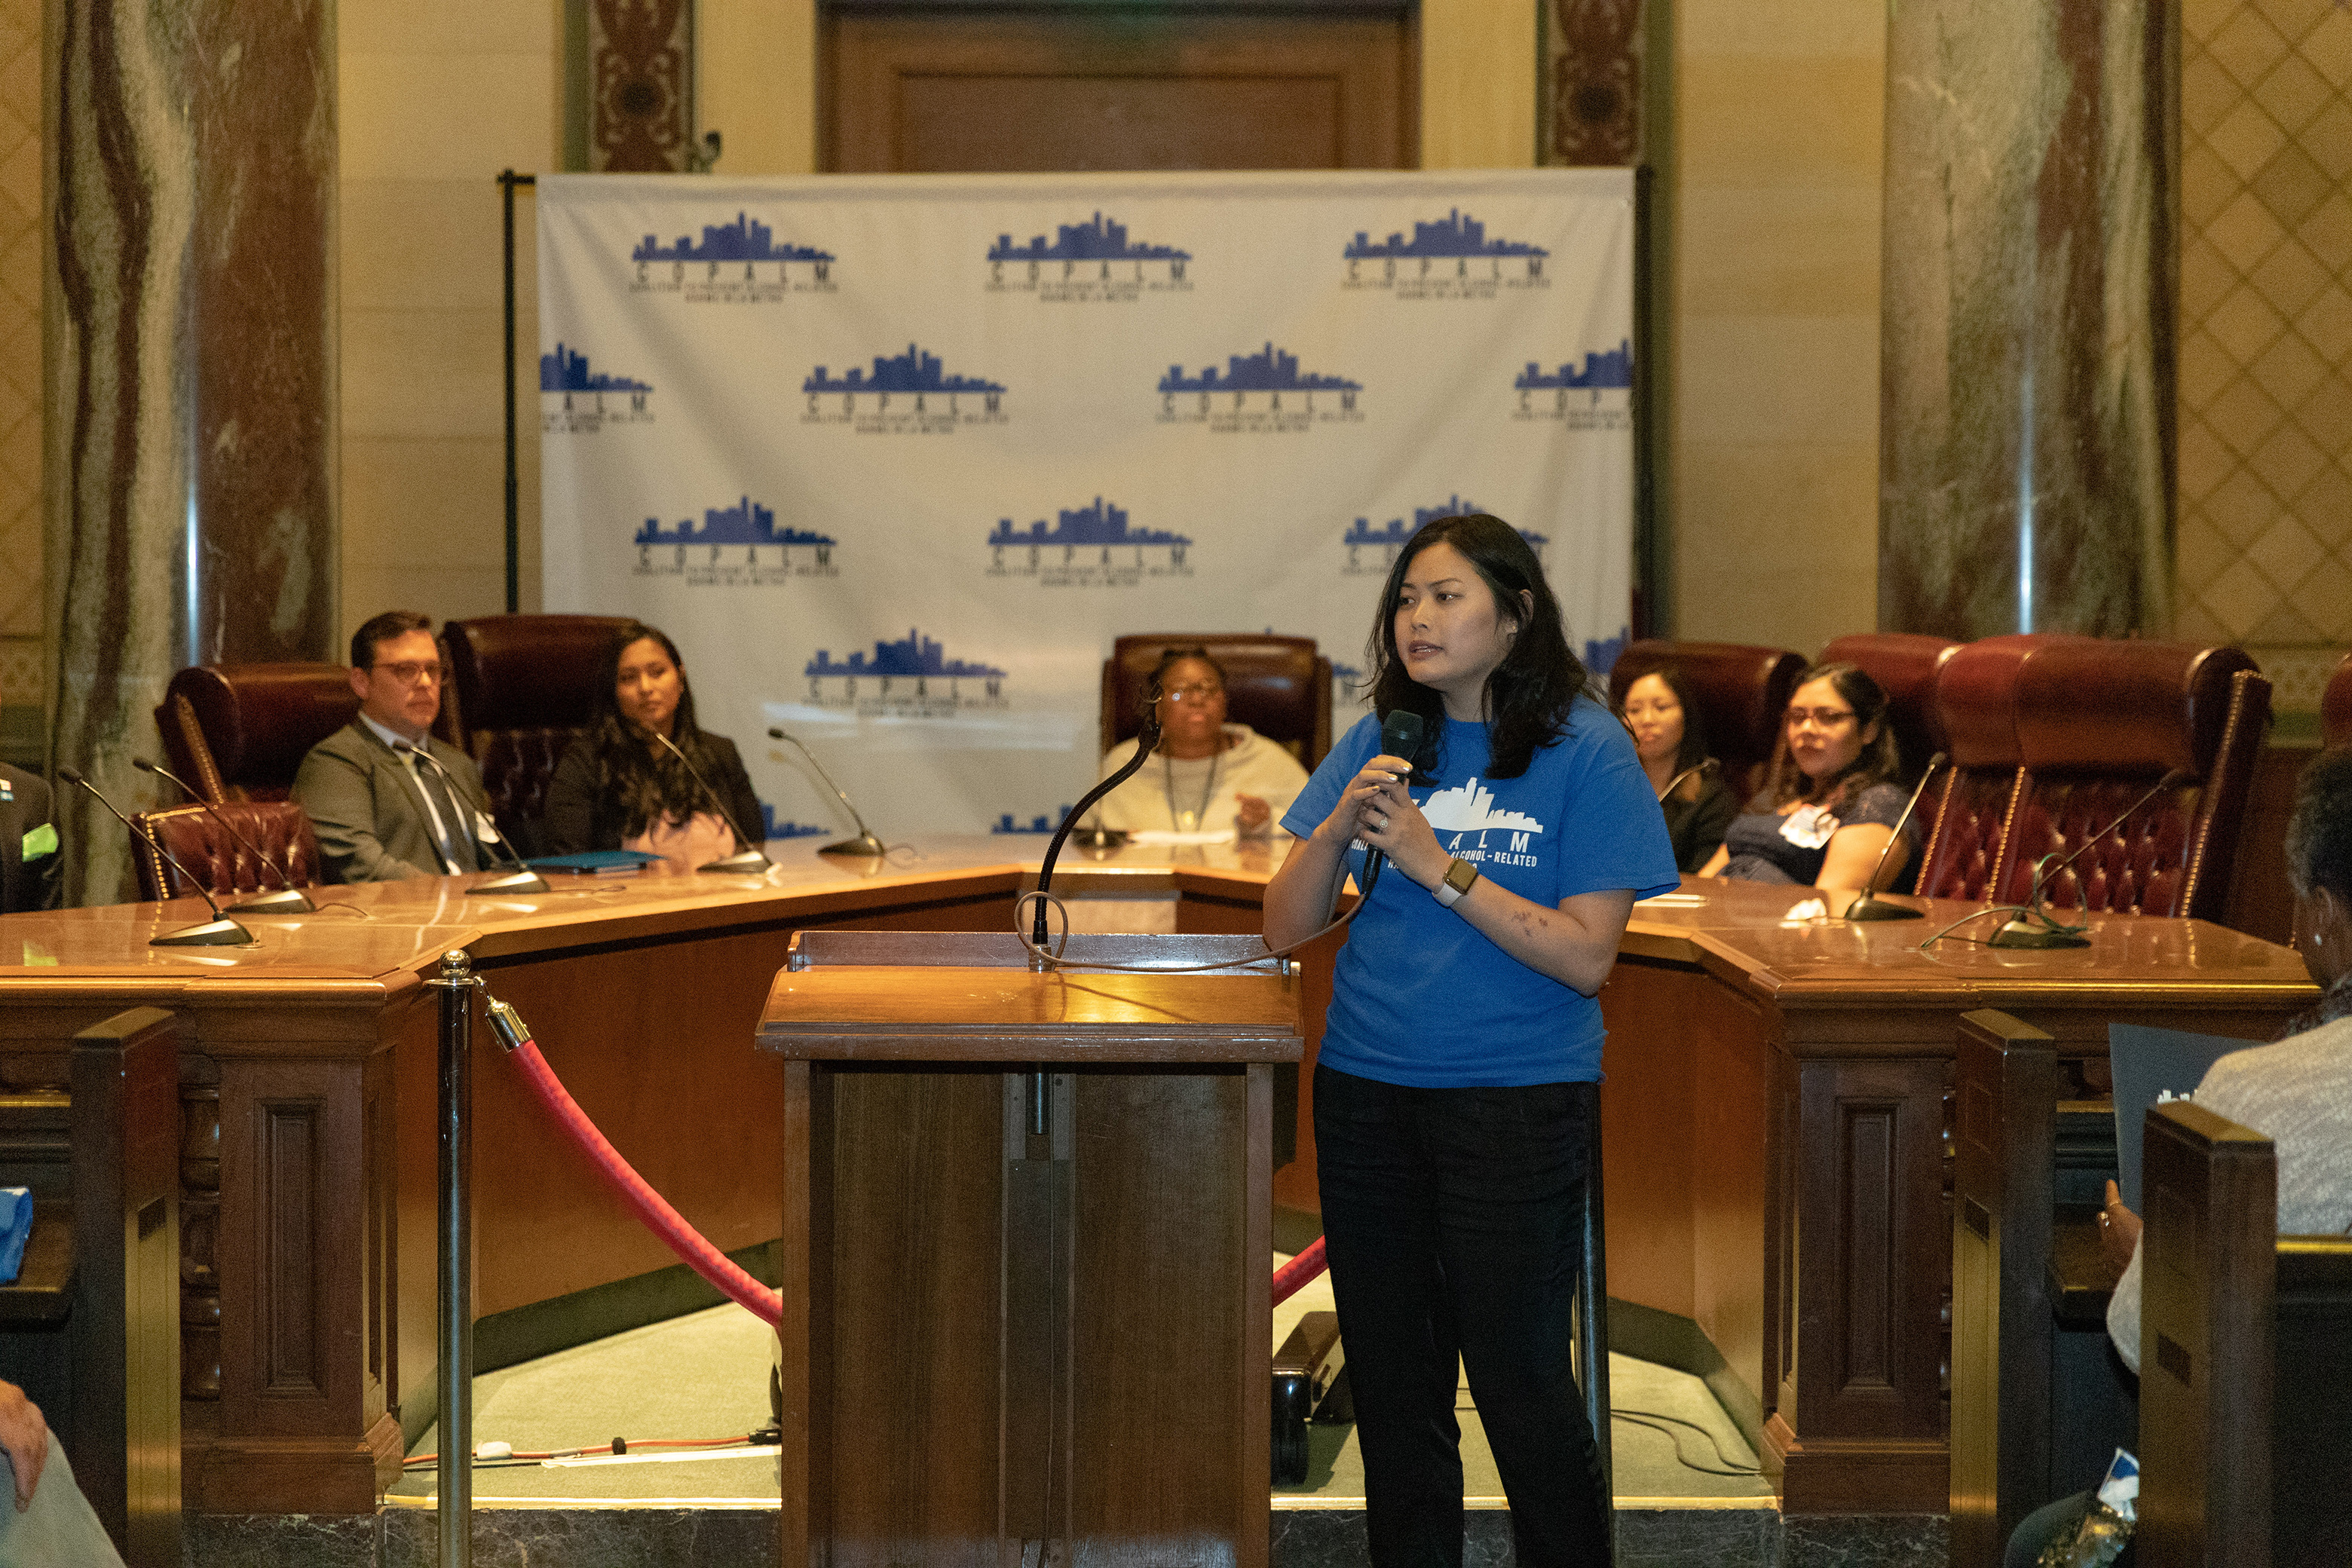 Member of CoPALM speaking into microphone at Los Angeles City Hall Chambers